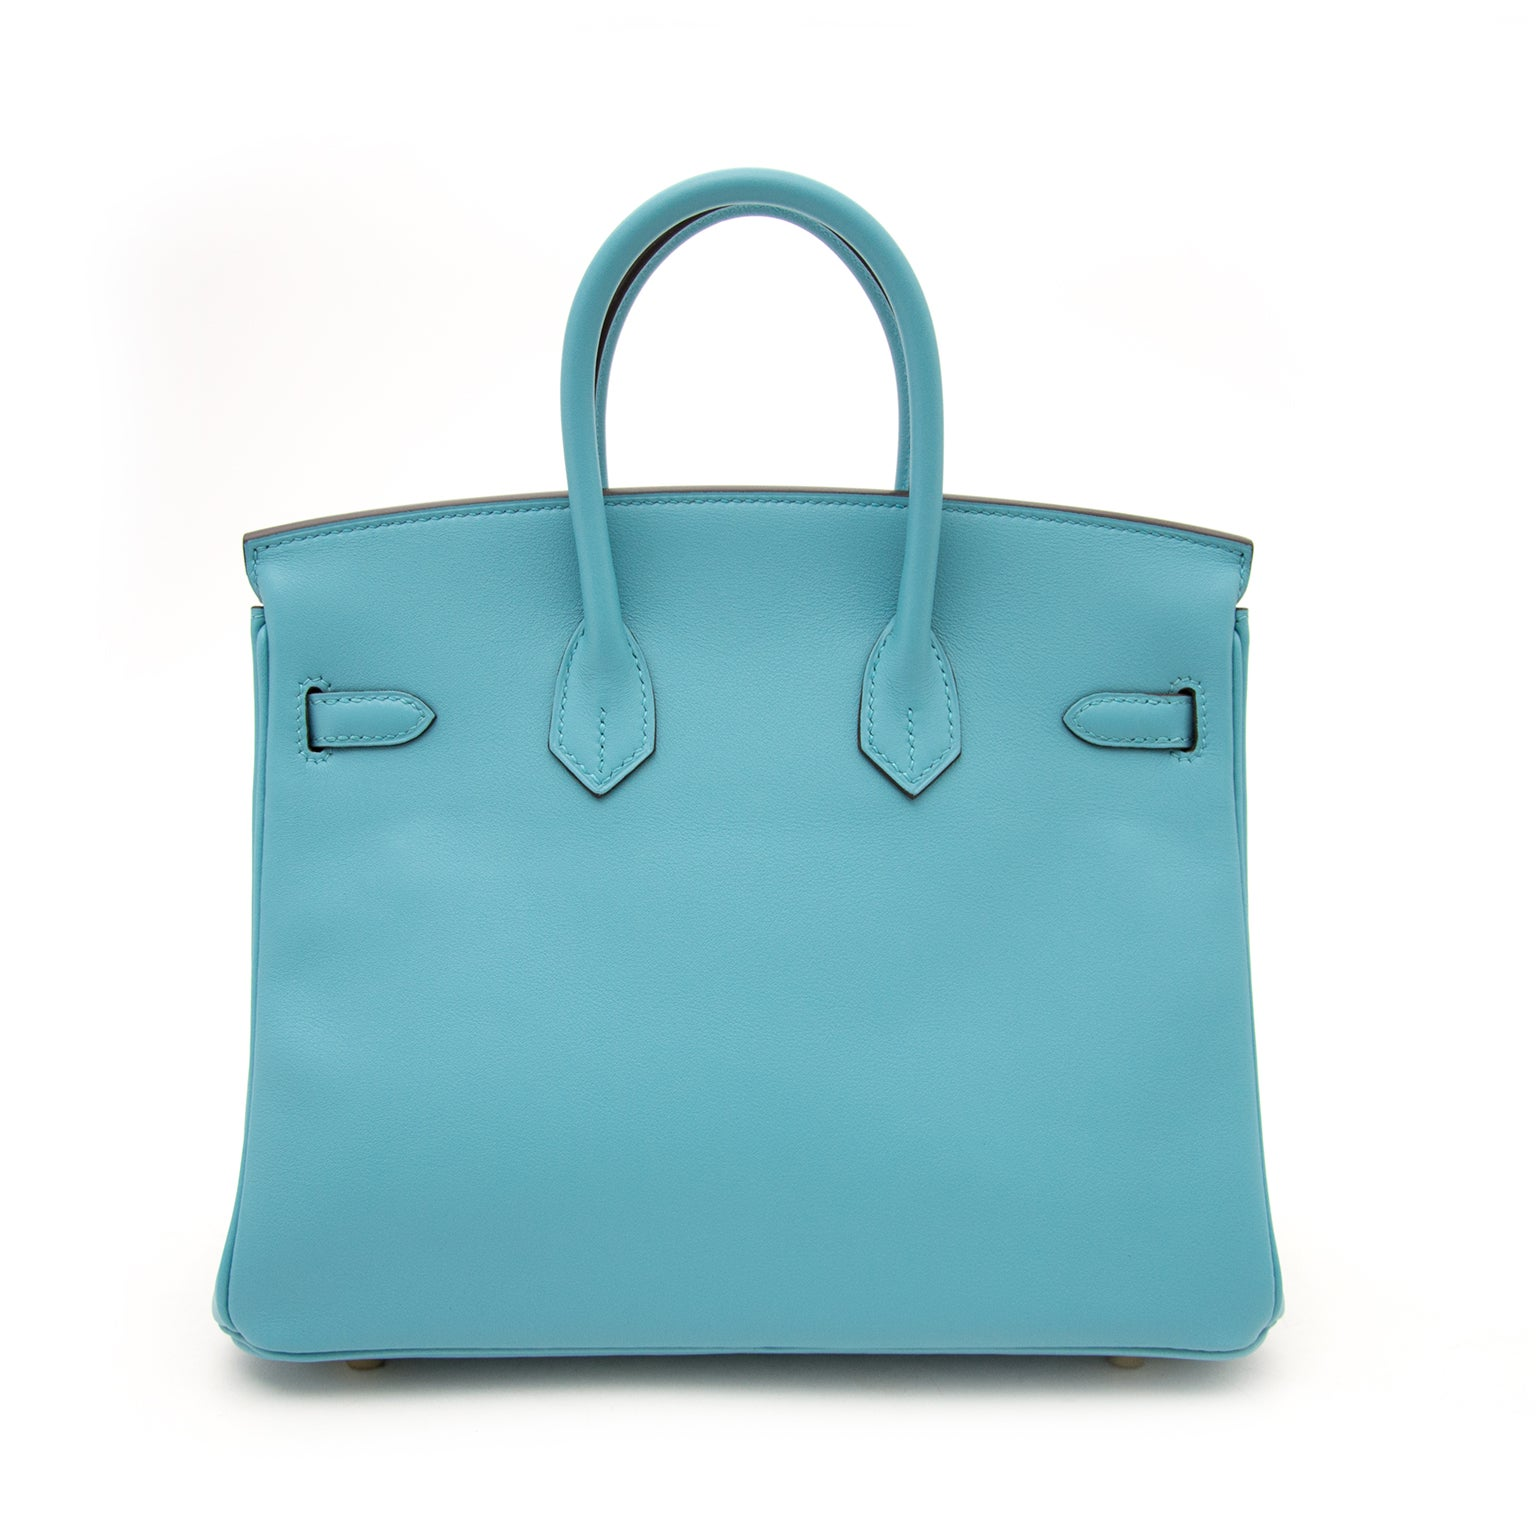 ddf0bfa87052 BRAND NEW Hermes Birkin 25 Swift Bleu Saint Cyr at 1stdibs